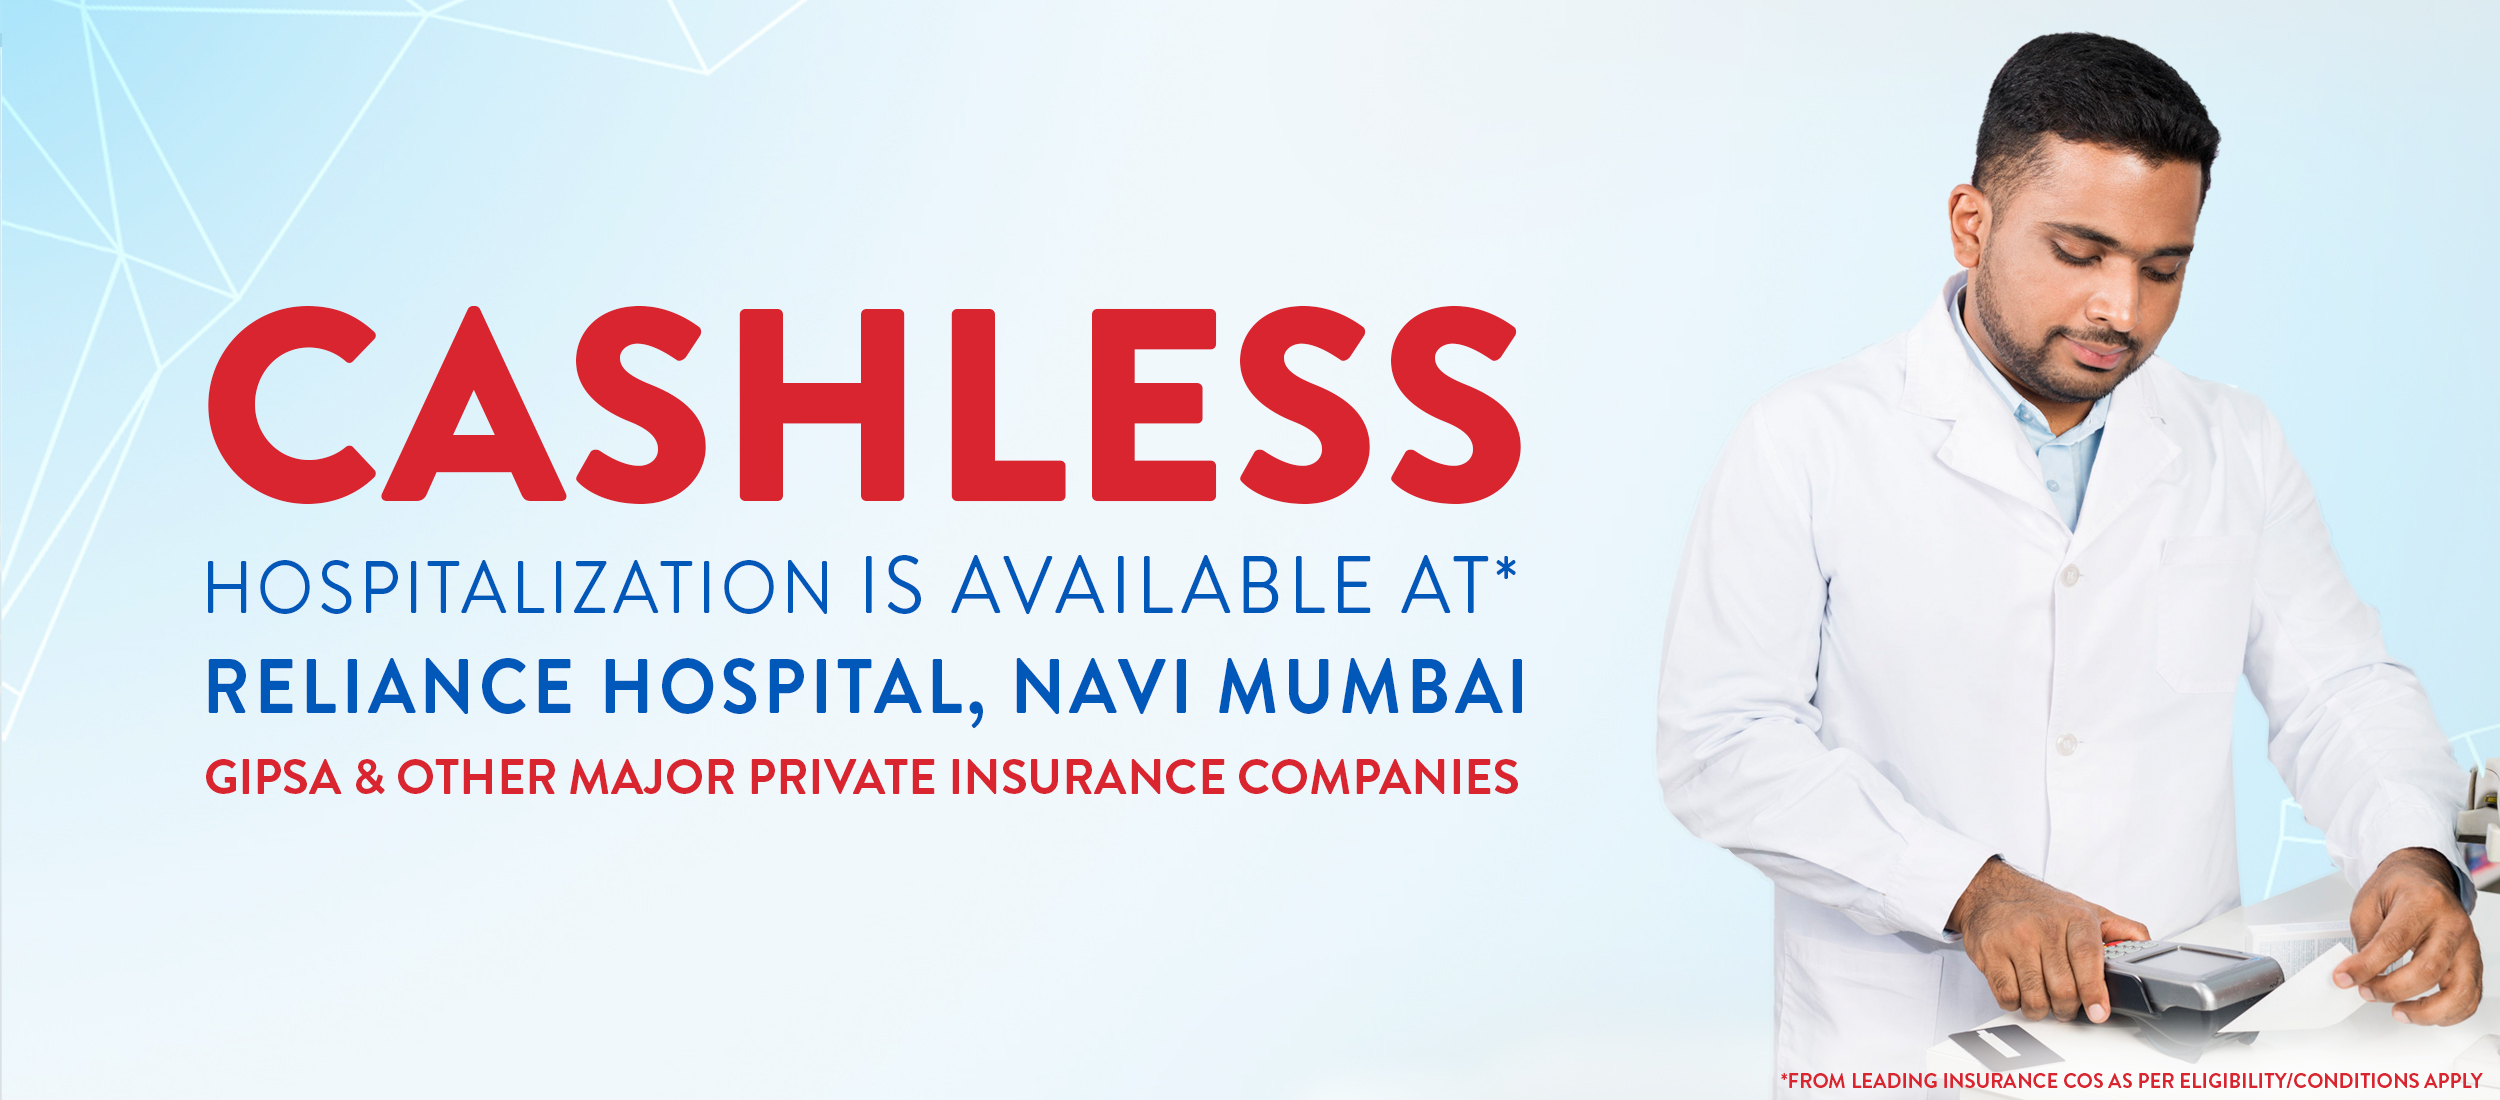 Cashless Hospitalization Is Available at Reliance Hospital